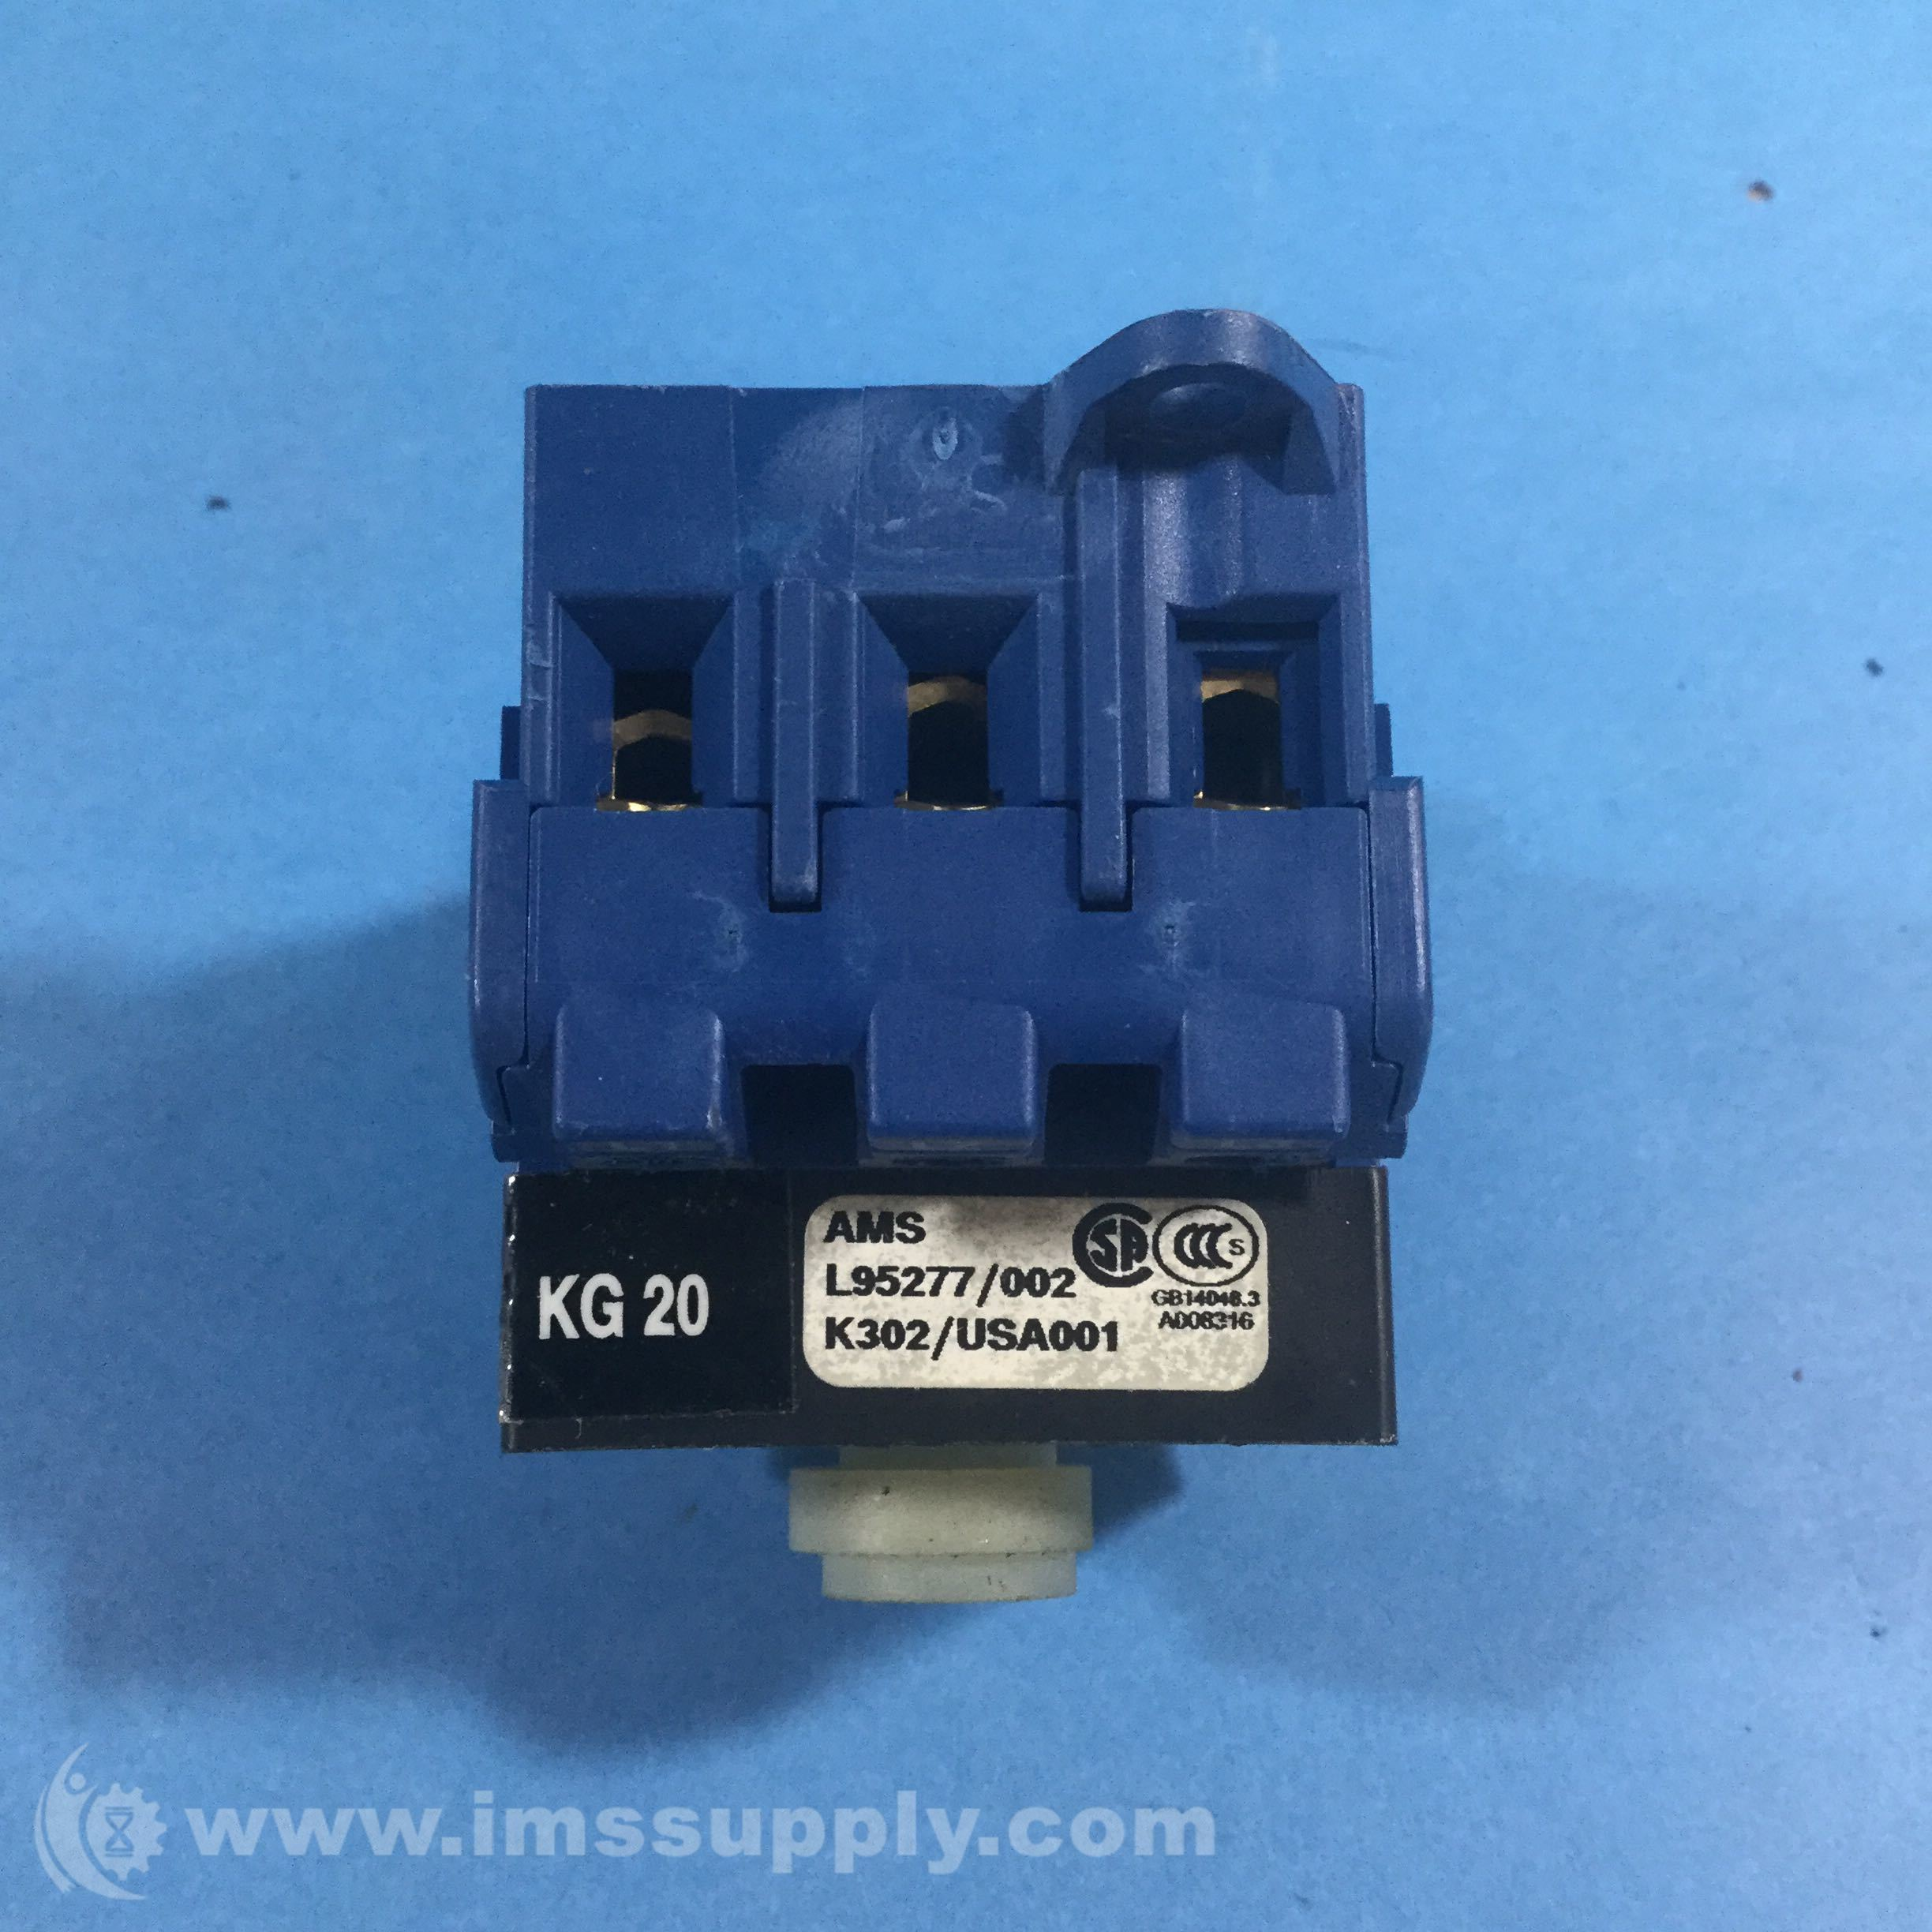 Kraus /& Naimer KG250 Rotary Disconnect Switch 250A 3-Pole